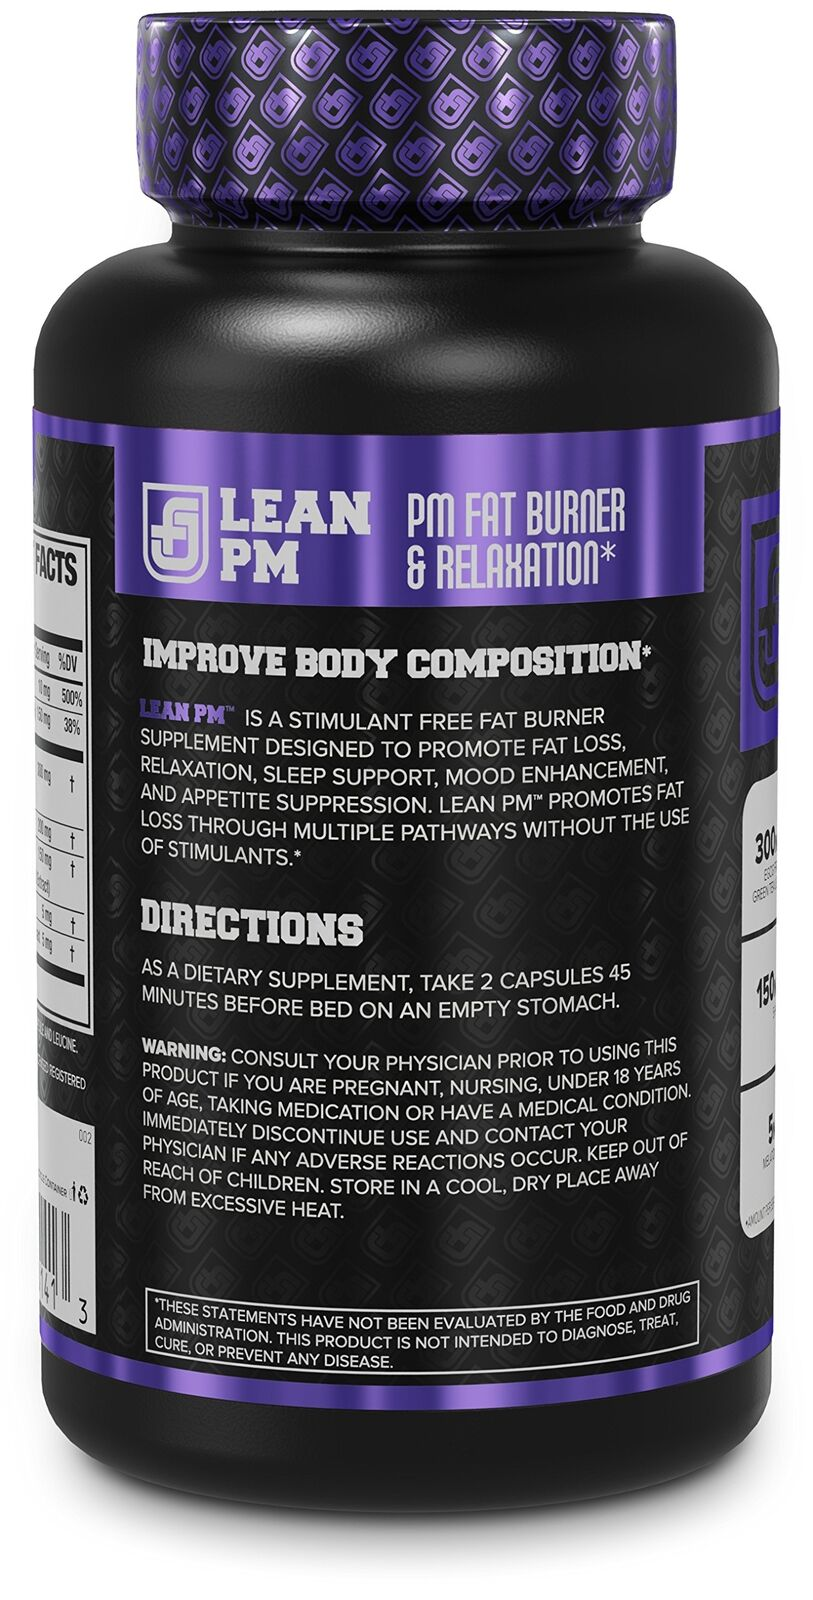 LEAN PM Night Time Fat Burner Sleep Aid Supplement ...